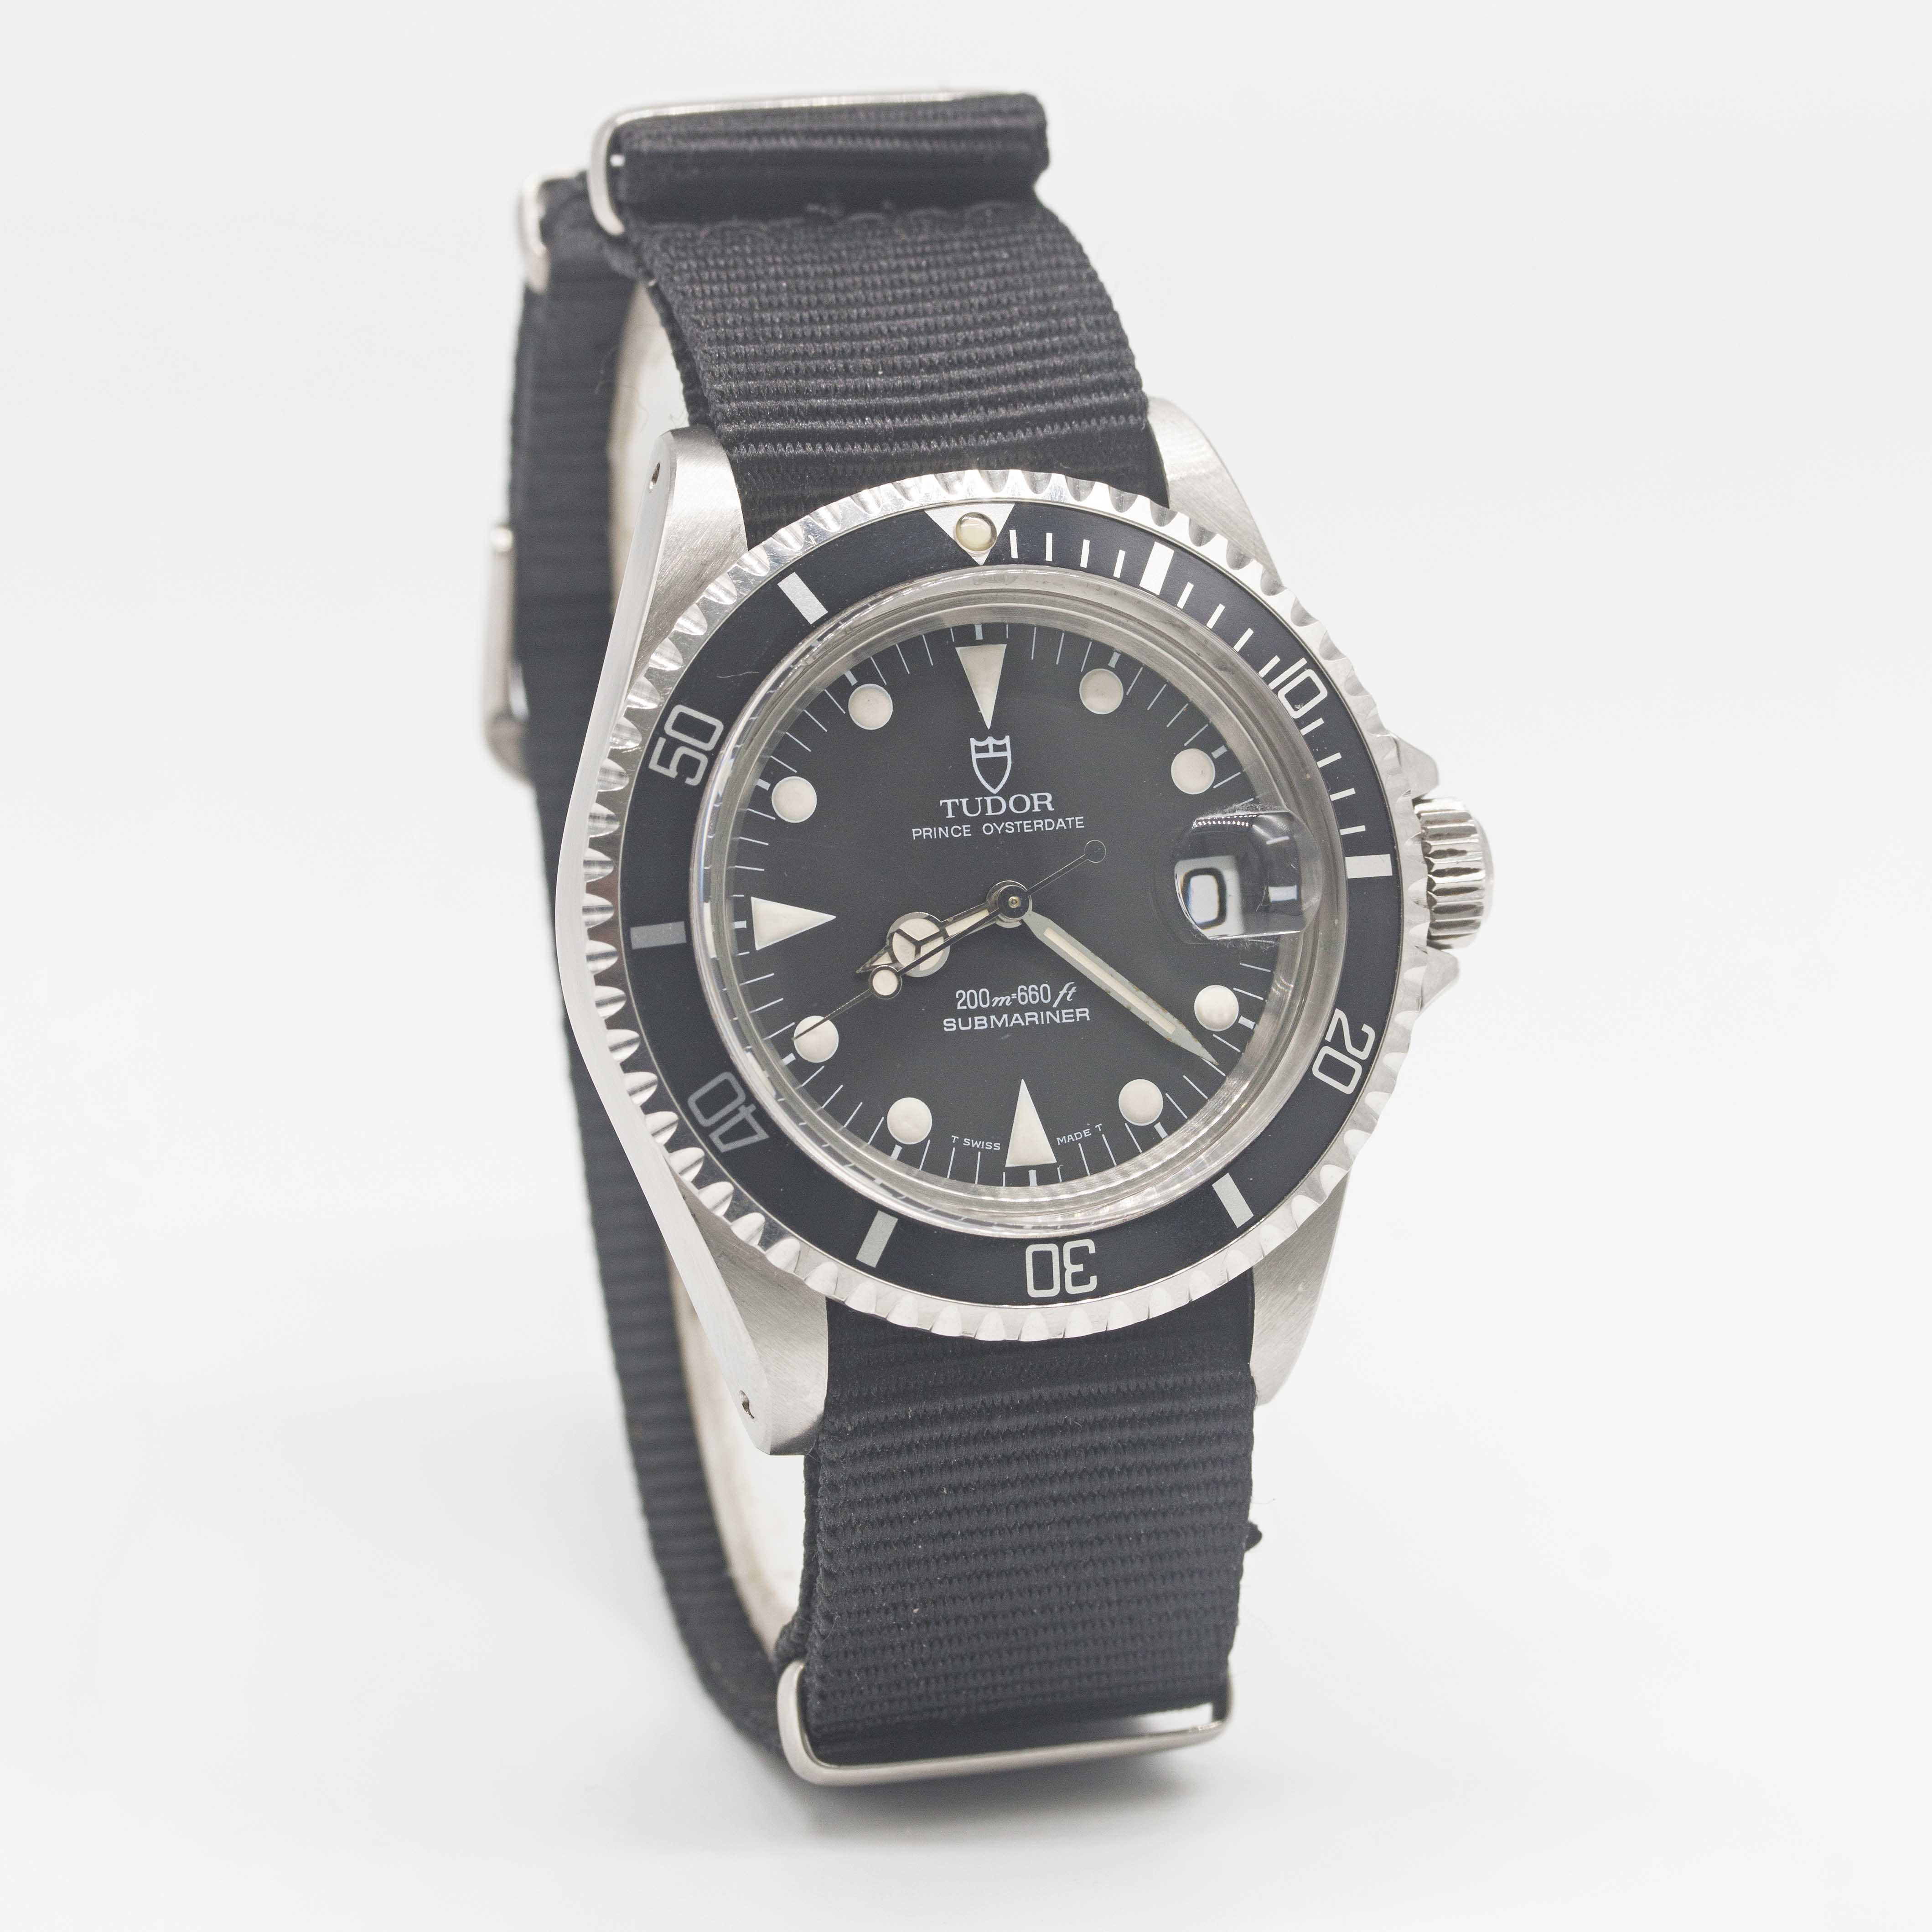 Lot 5 - A GENTLEMAN'S STAINLESS STEEL ROLEX TUDOR PRINCE OYSTERDATE SUBMARINER WRIST WATCH CIRCA 1992,